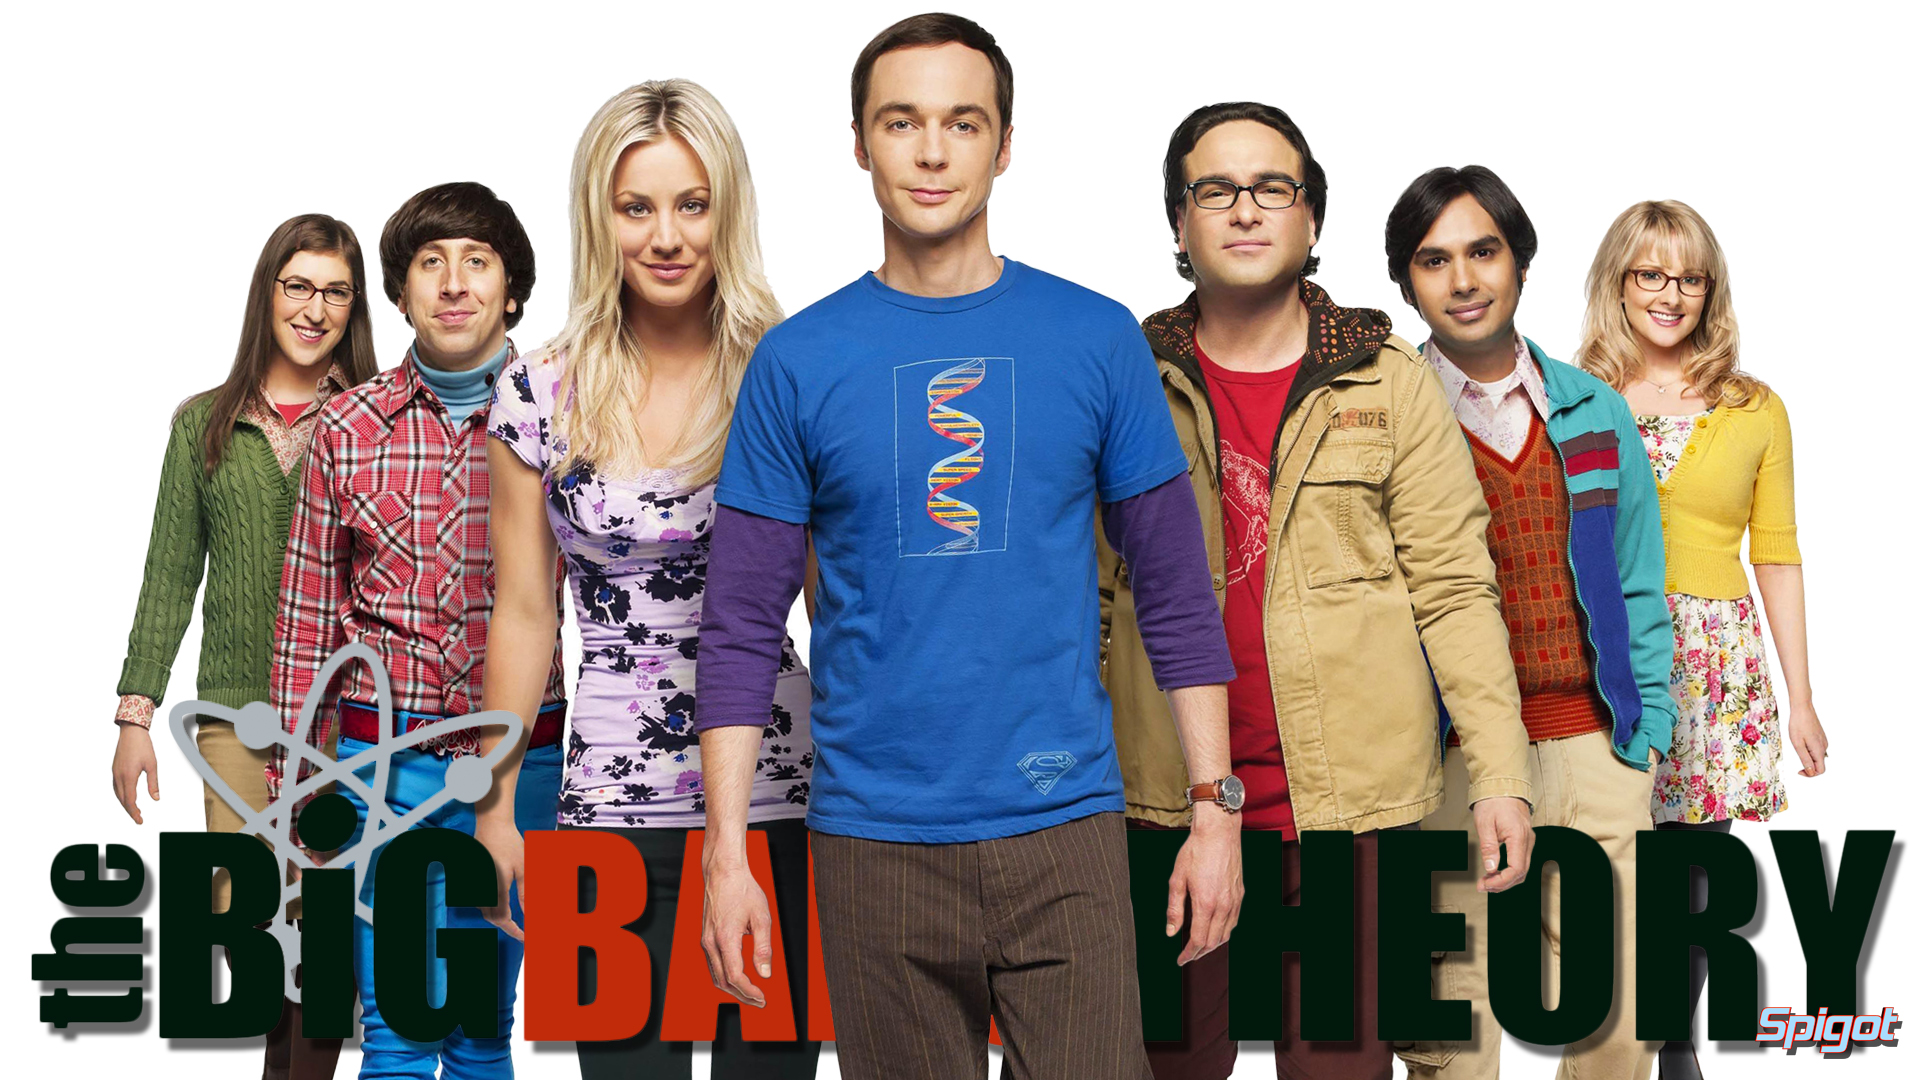 The Big Bang Theory wallpaper  George Spigot39;s Blog